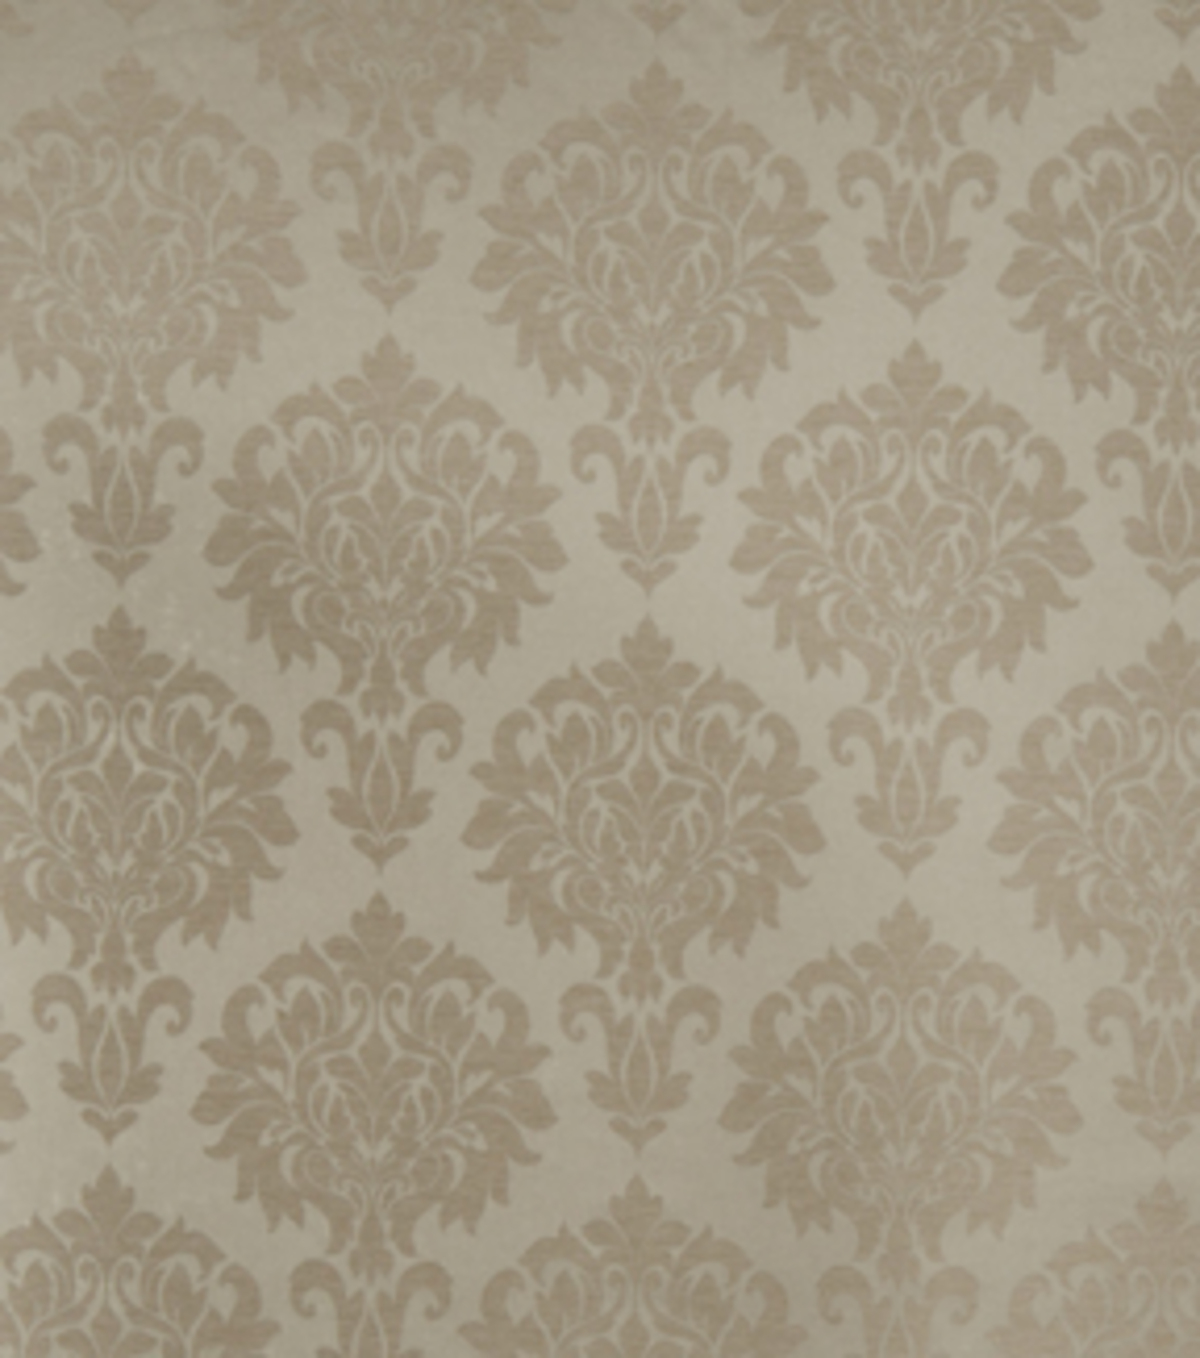 "Home Decor 8""x8"" Fabric Swatch-Eaton Square Perfection Taupe"